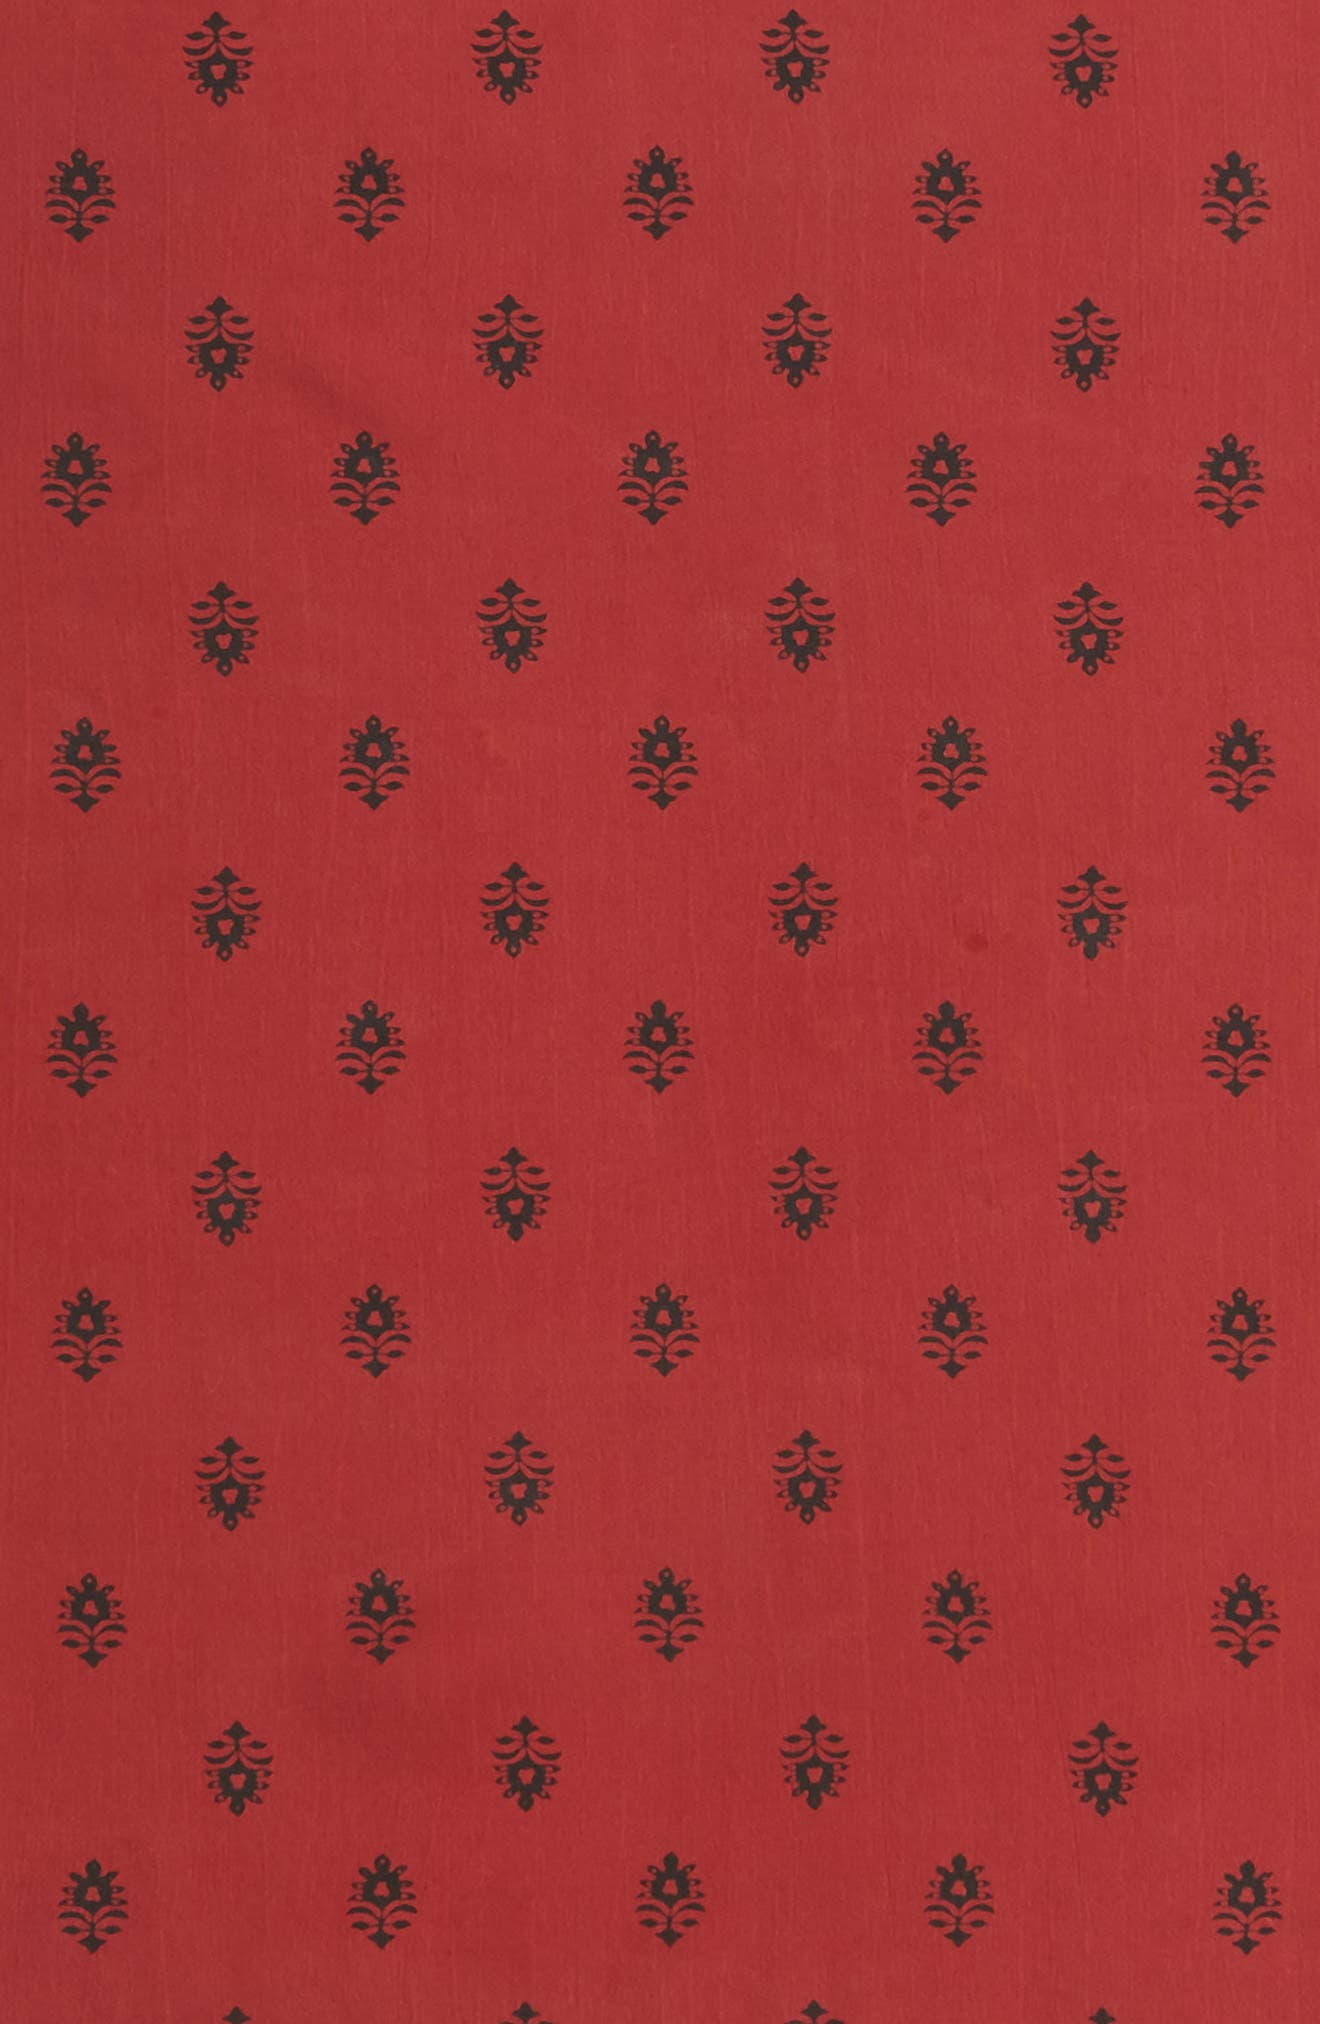 Printed Silk Square Scarf,                             Alternate thumbnail 4, color,                             RED BALI DOTS